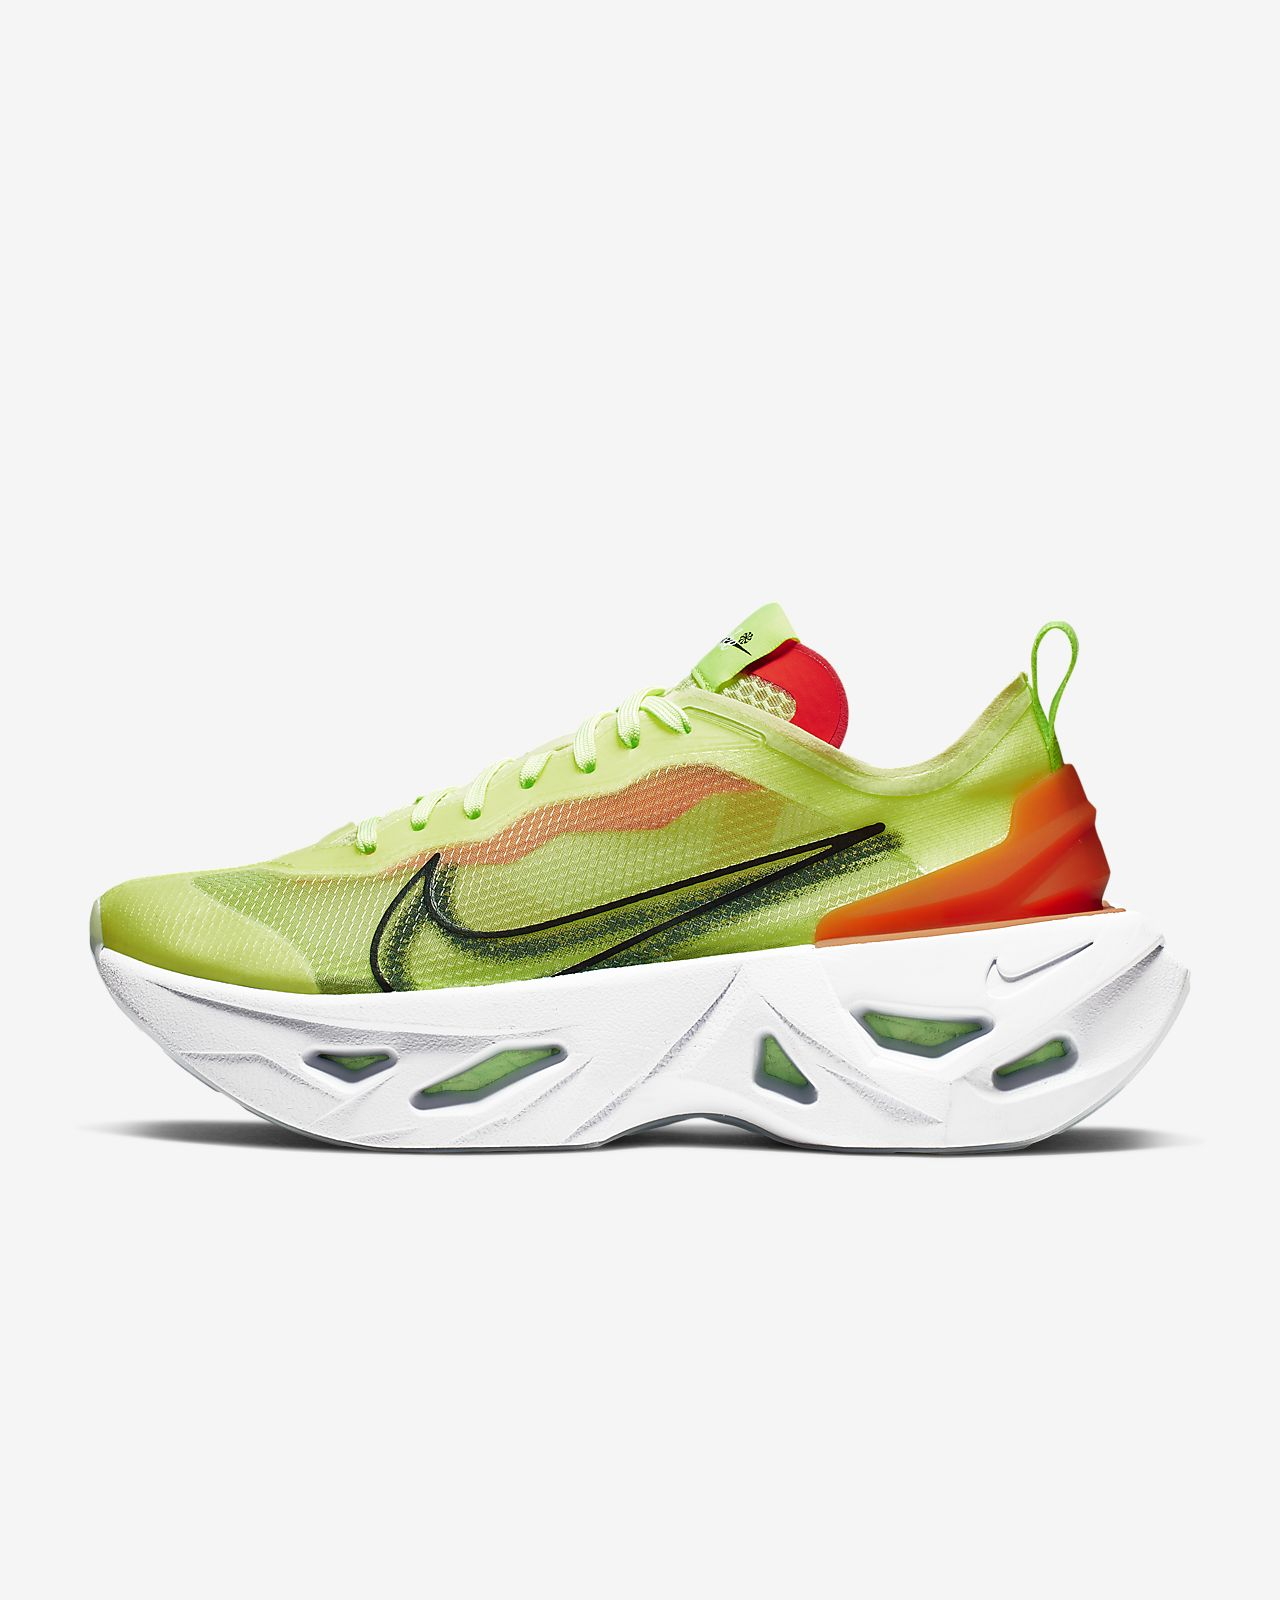 giay chunky sneaker Nike zoomx vista grind - elle man